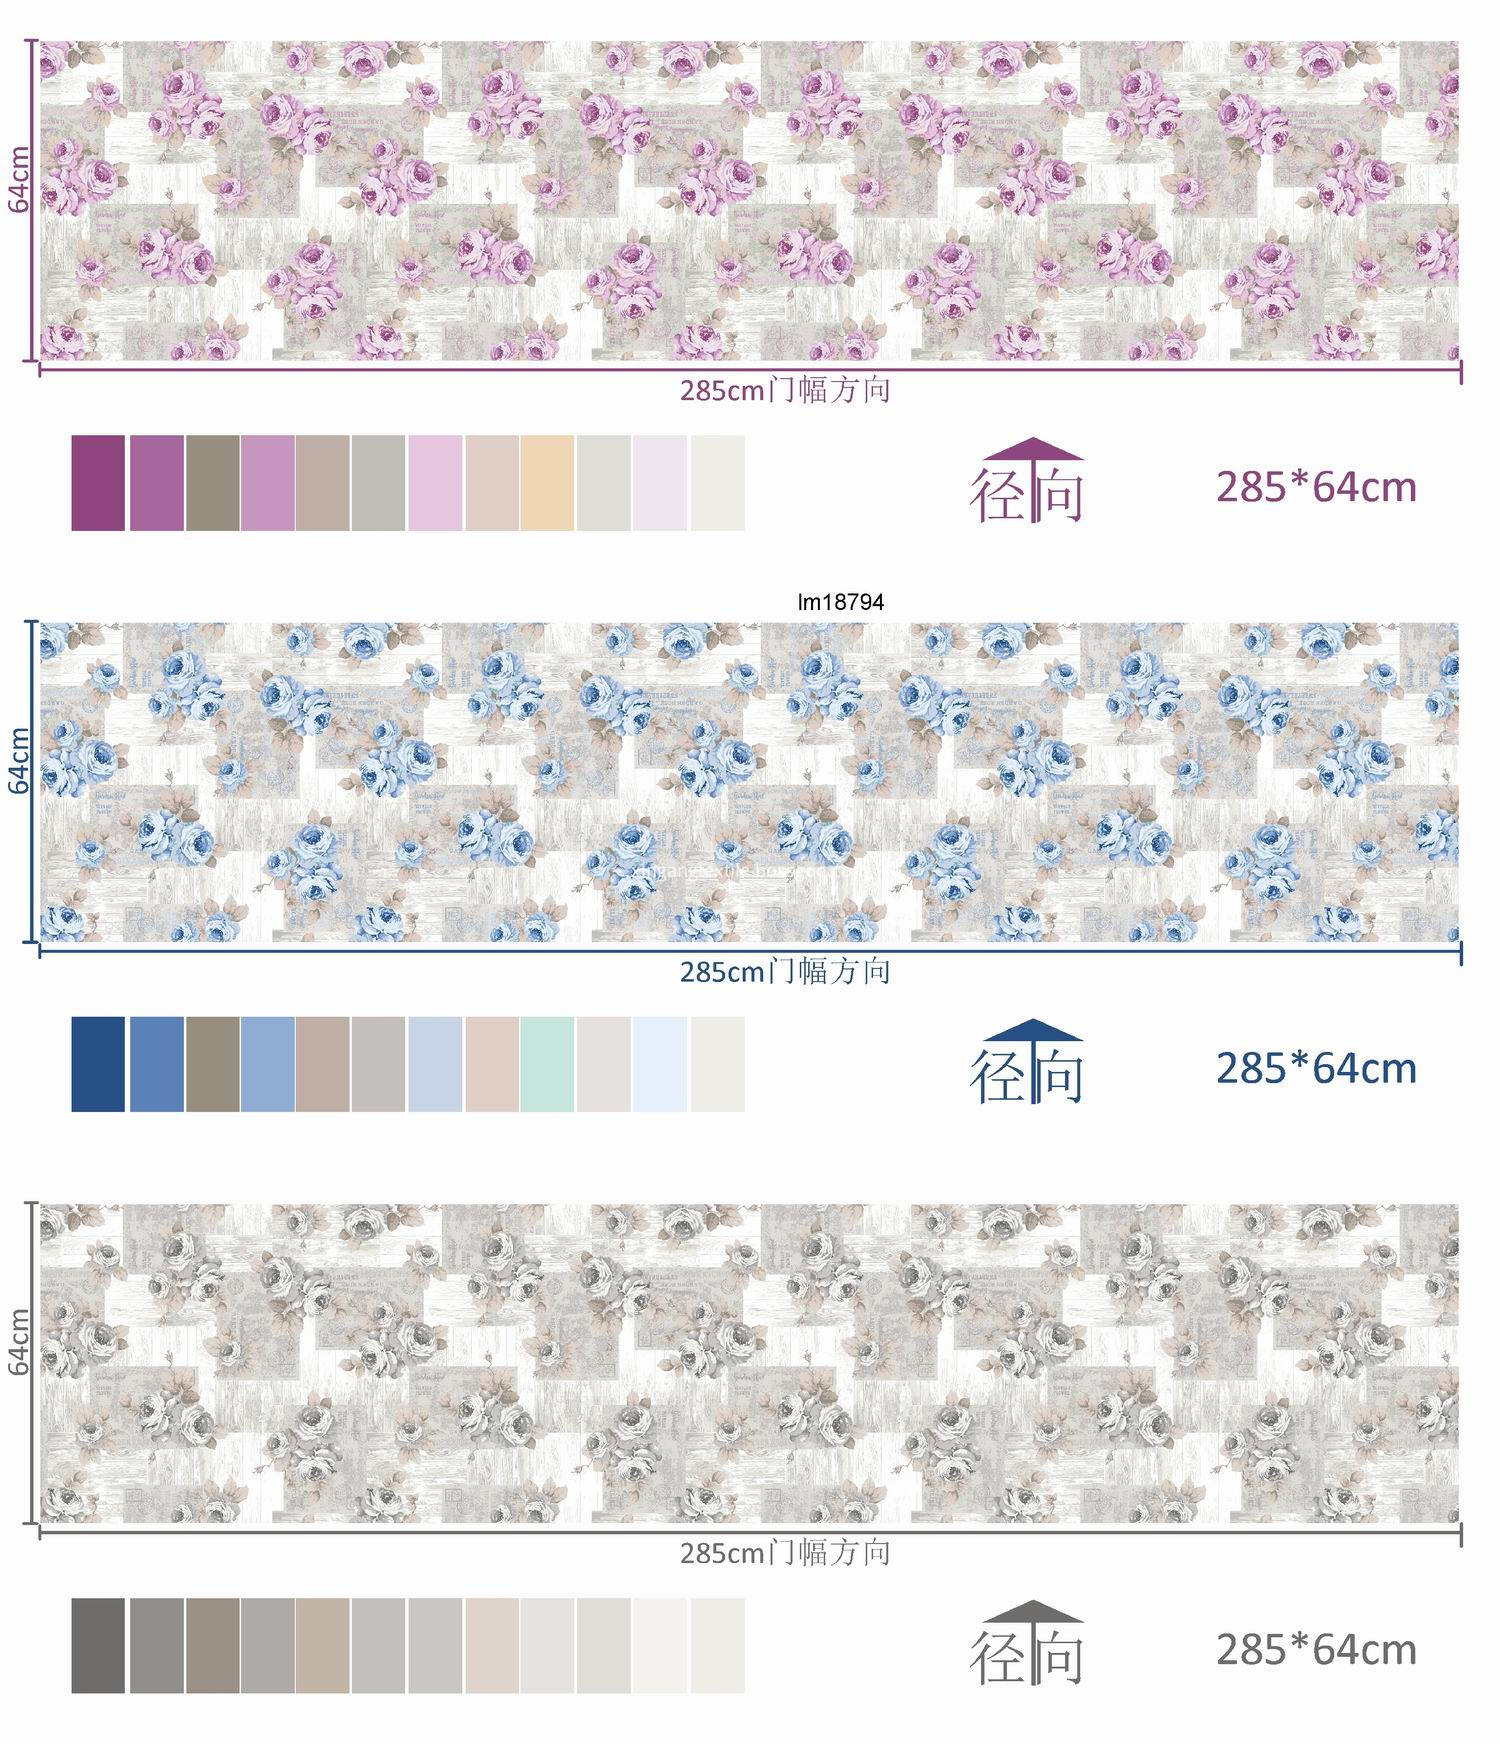 XINGANG BEDDING FABRIC (227)